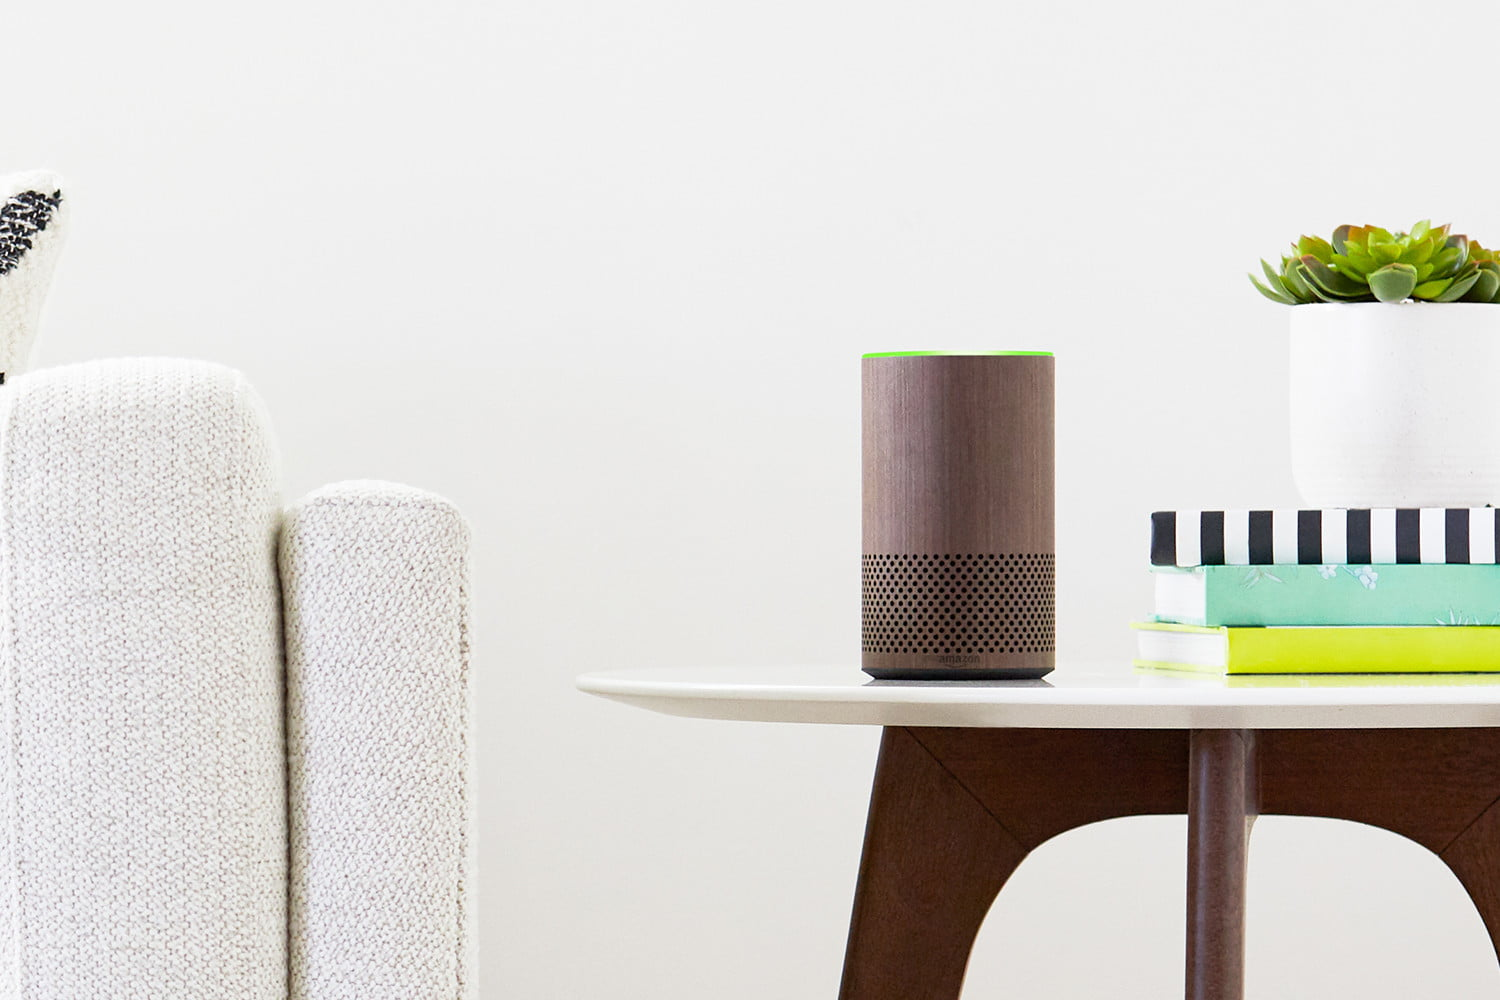 How to connect your smart home gadgets with Amazon Alexa